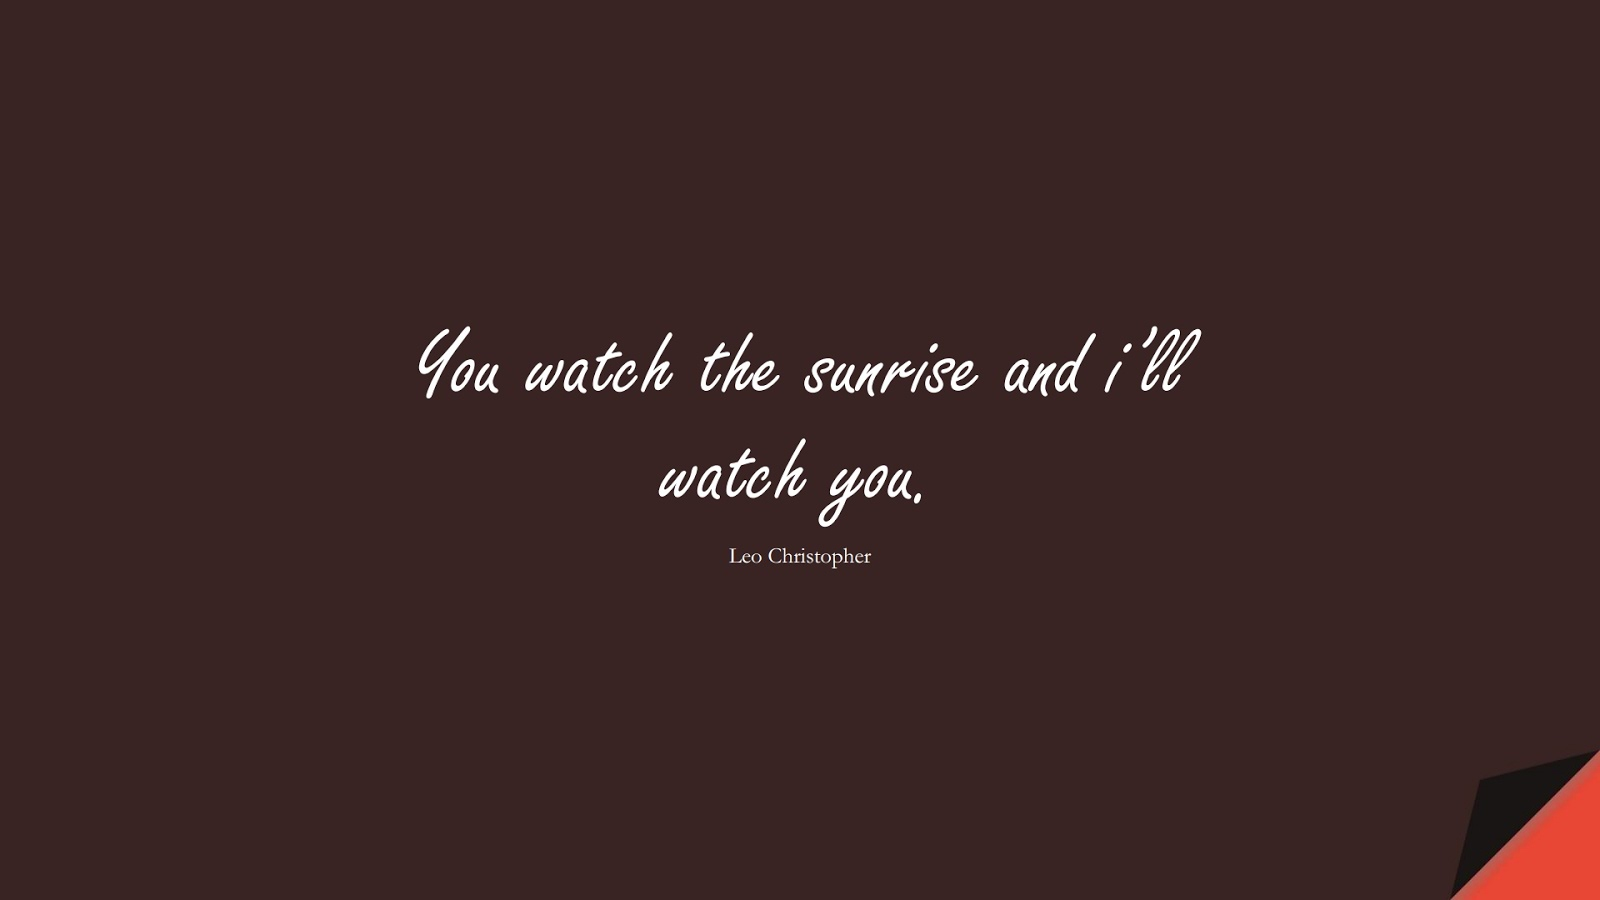 You watch the sunrise and i'll watch you. (Leo Christopher);  #LoveQuotes